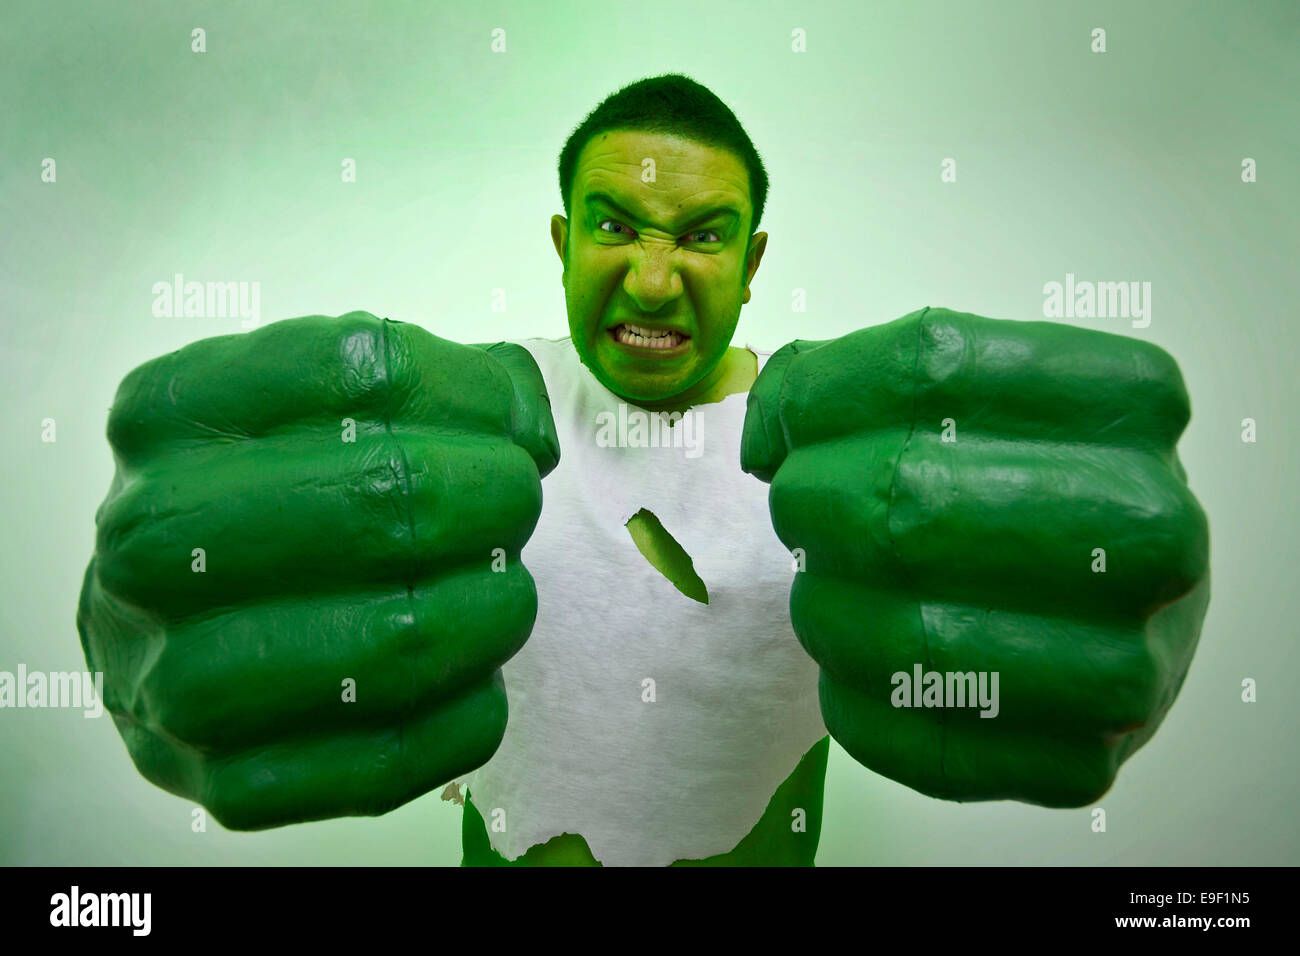 a man dressed in fancy dress comedy costume as the incredible hulk with giant green hands and ripped t shirt  sc 1 st  Alamy & a man dressed in fancy dress comedy costume as the incredible hulk ...